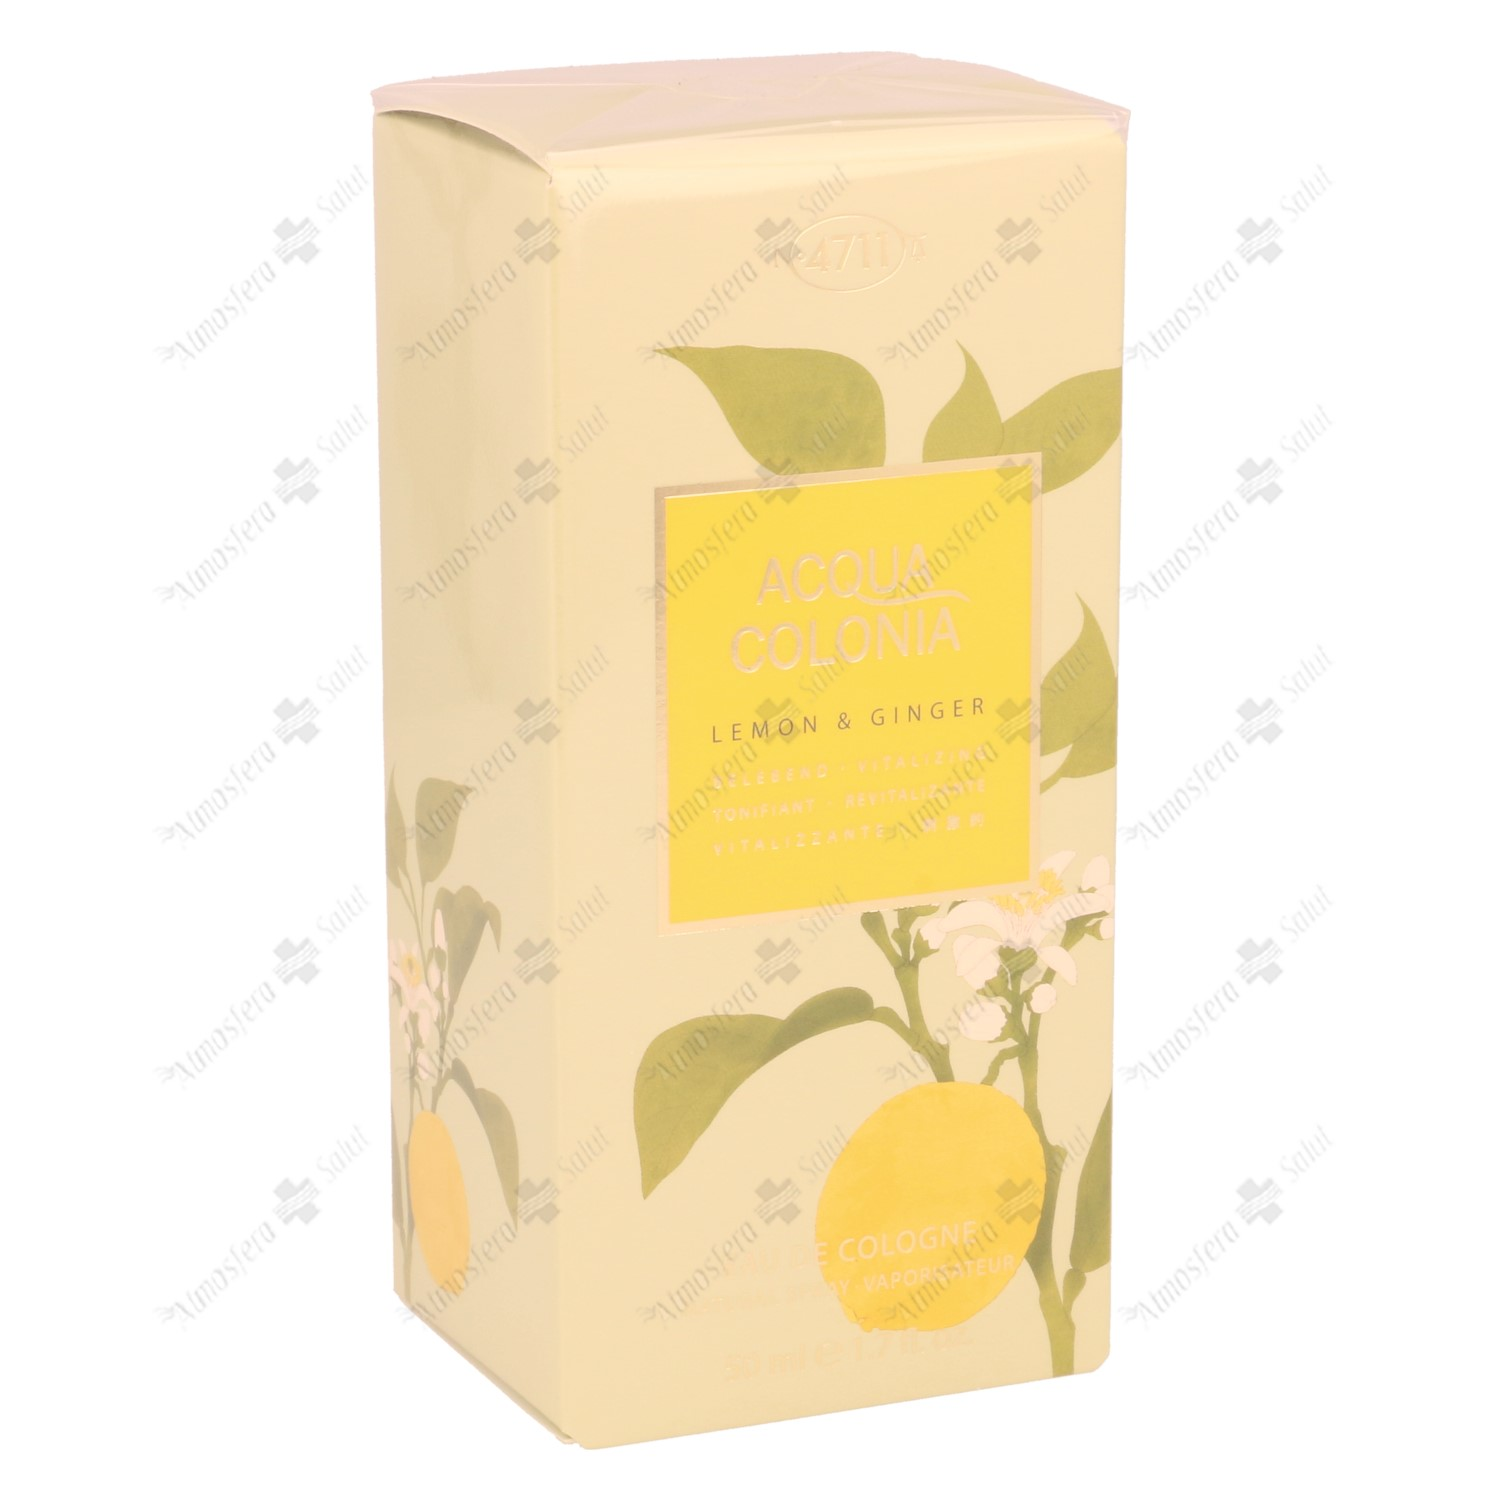 4711 EAU DE COLONIA LIMON & JENGIBRE 50 ML